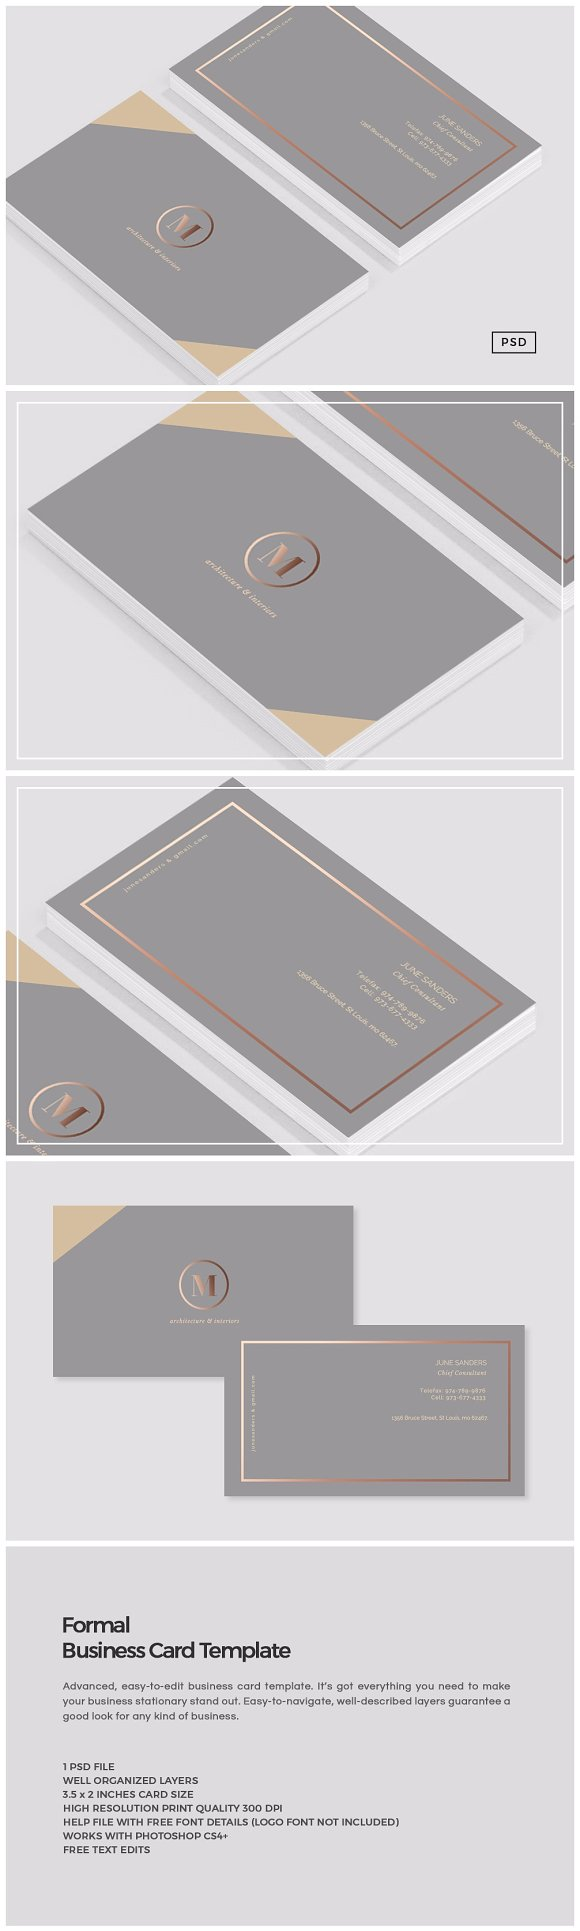 Formal Business Card Template ~ Business Card Templates ~ Creative ...